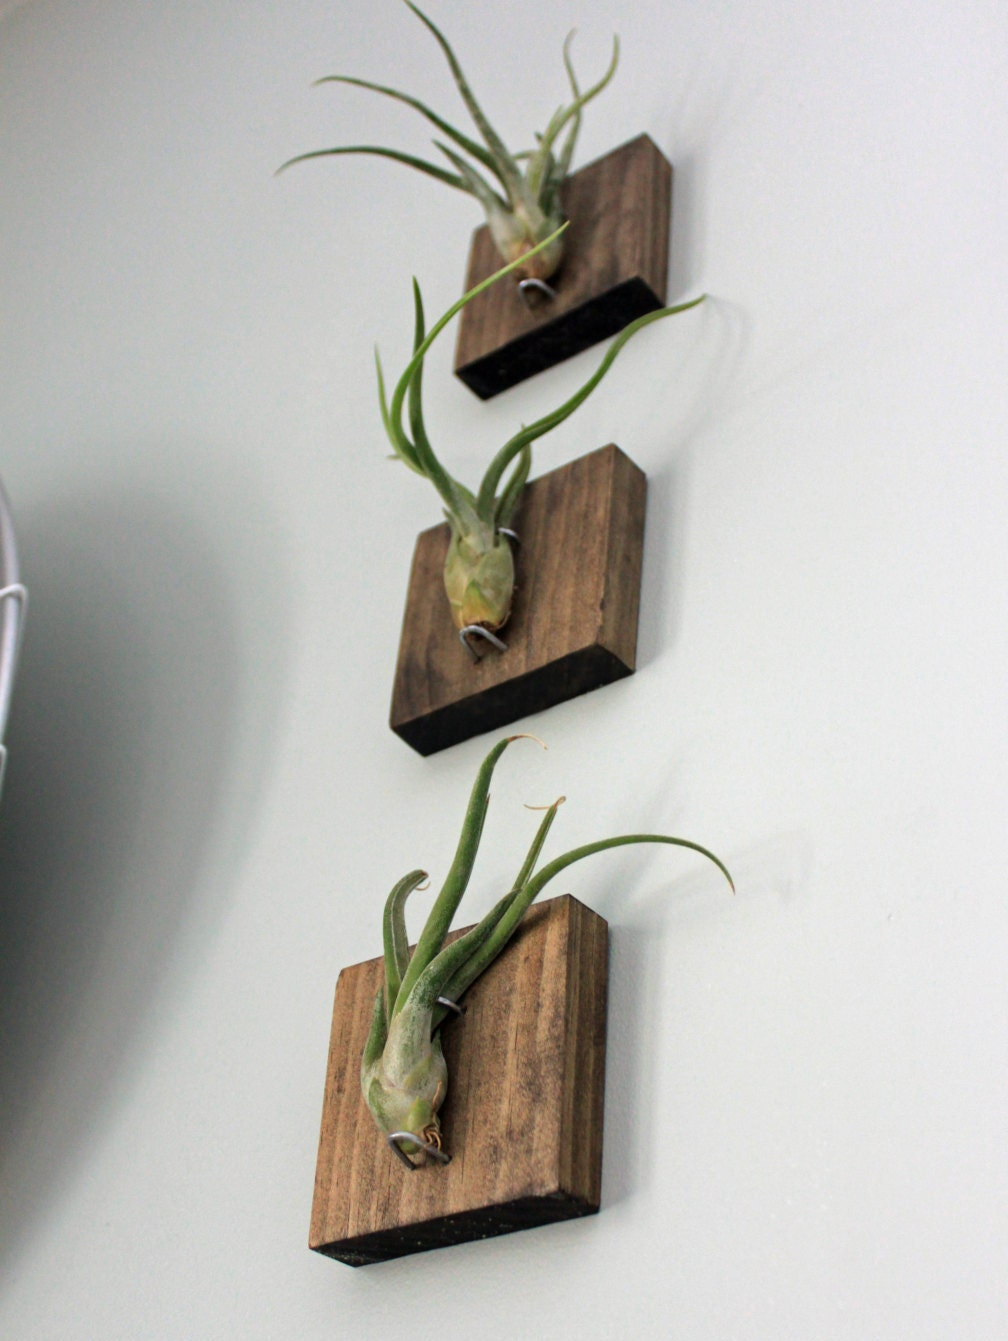 Mounted air plants medusa 39 s head living art uniqe for Air plant art